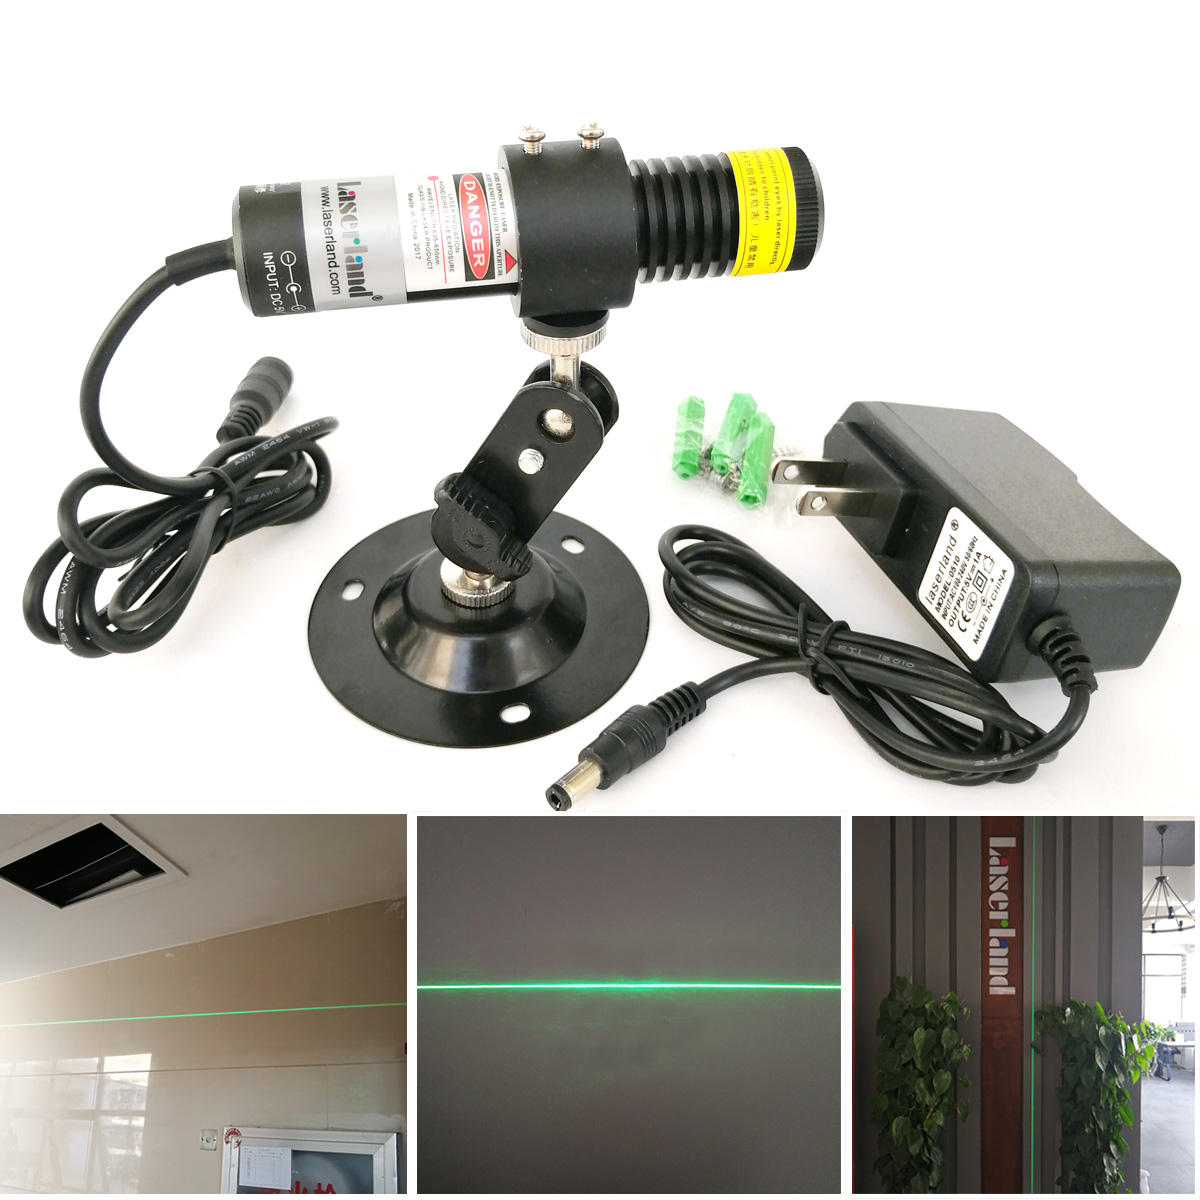 520nm 80mW Green Laser Line Generator Alignment Diode Module For Stone Wood Cutting Low Working Temp Dust-proof Waterproof IP65